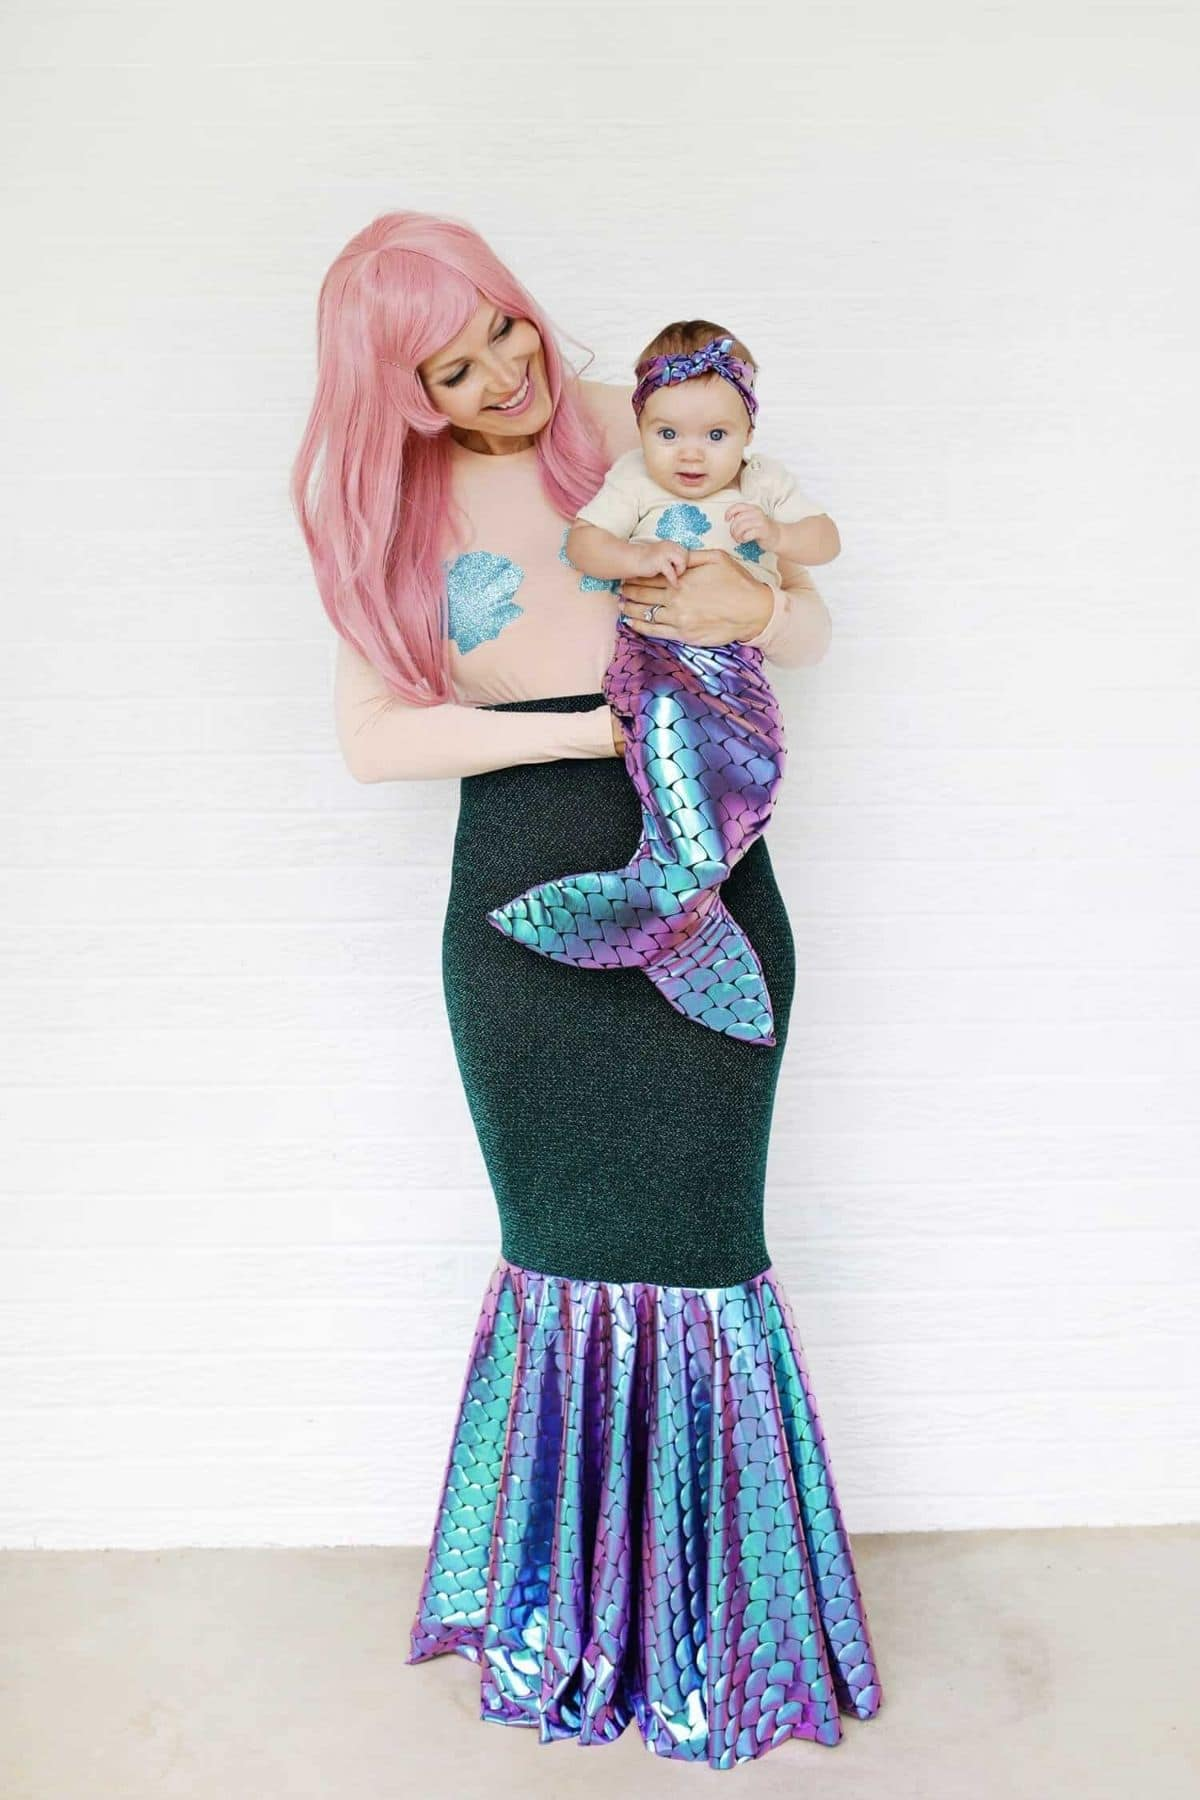 mother and daughter dressed up as mermaids together